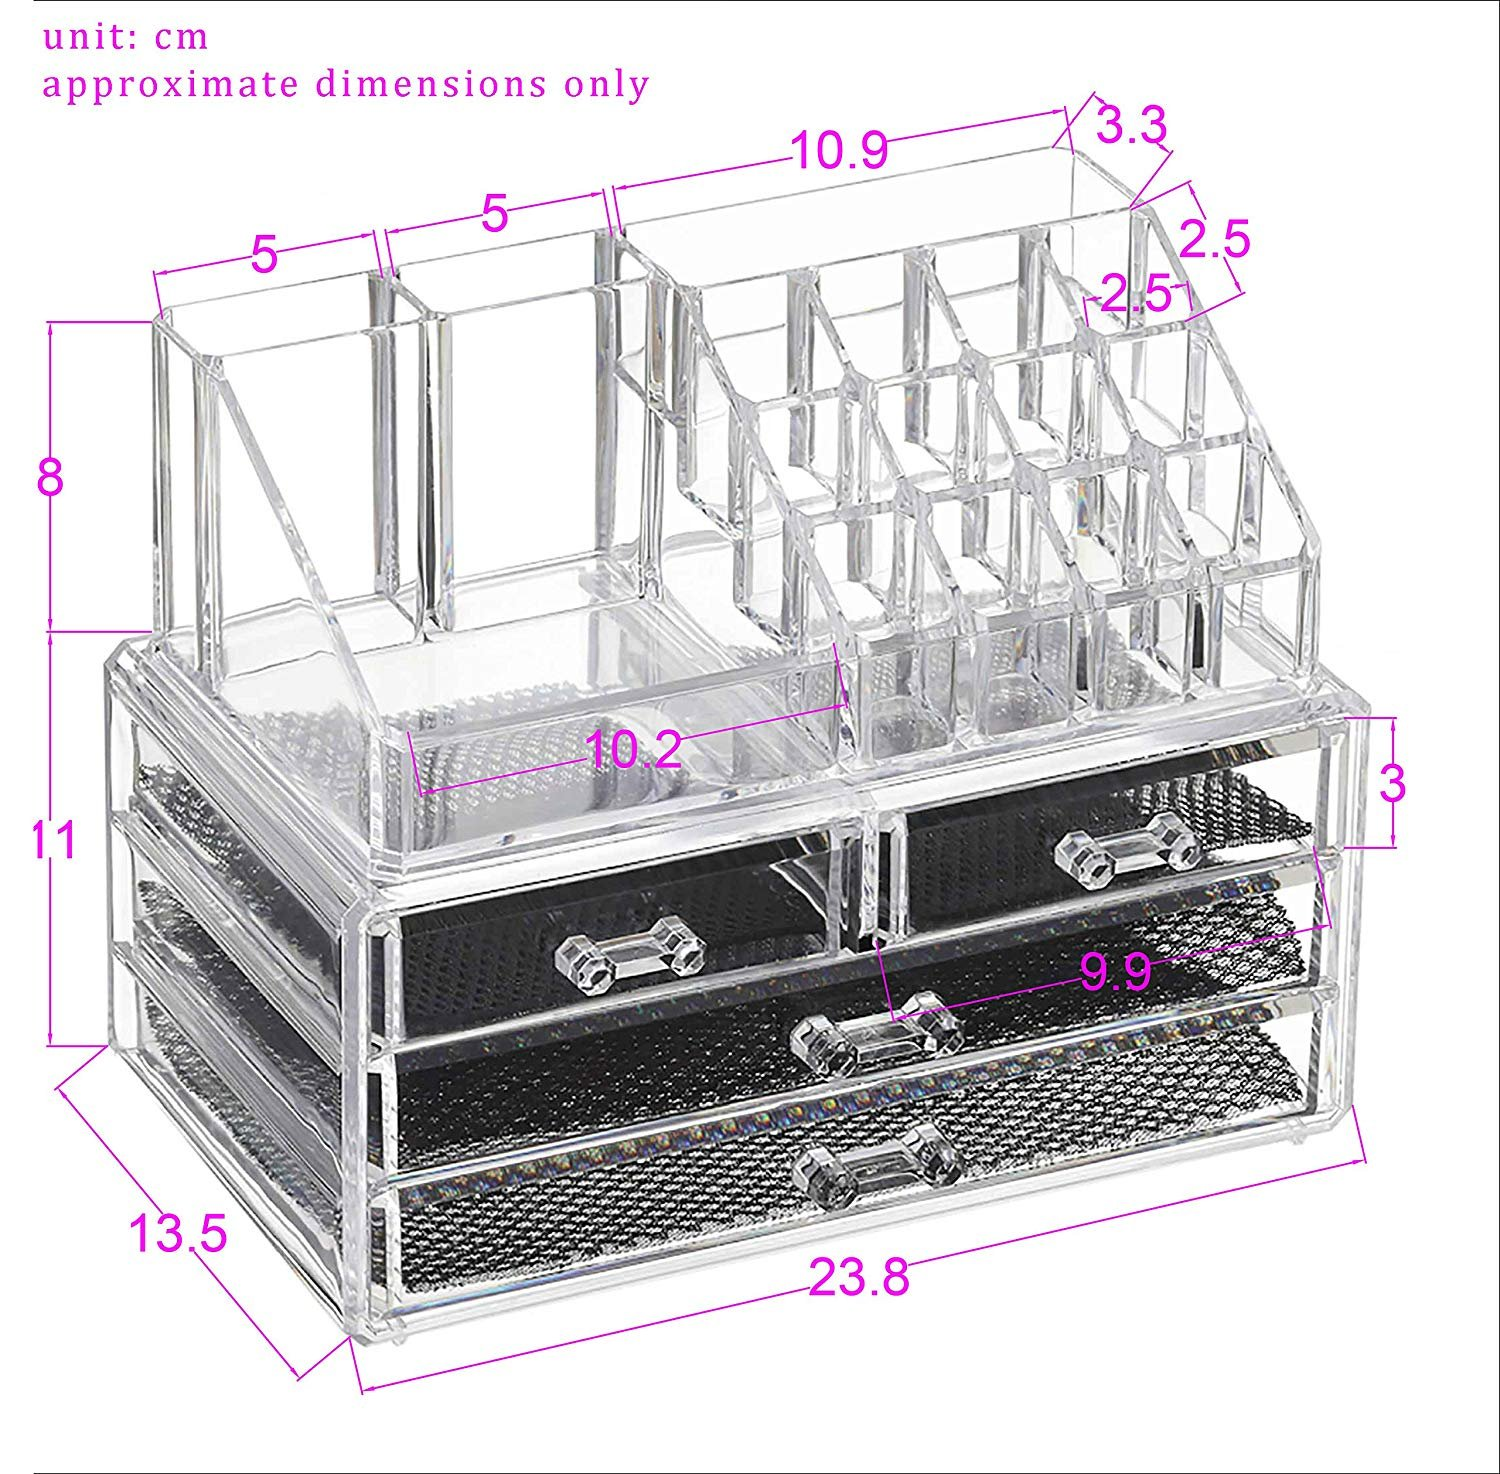 a33ec674e8f4 boby Clear Acrylic Cosmetic Makeup Storage Jewelry Drawer Organizer for  Bathroom Countertop Vanity Organizer